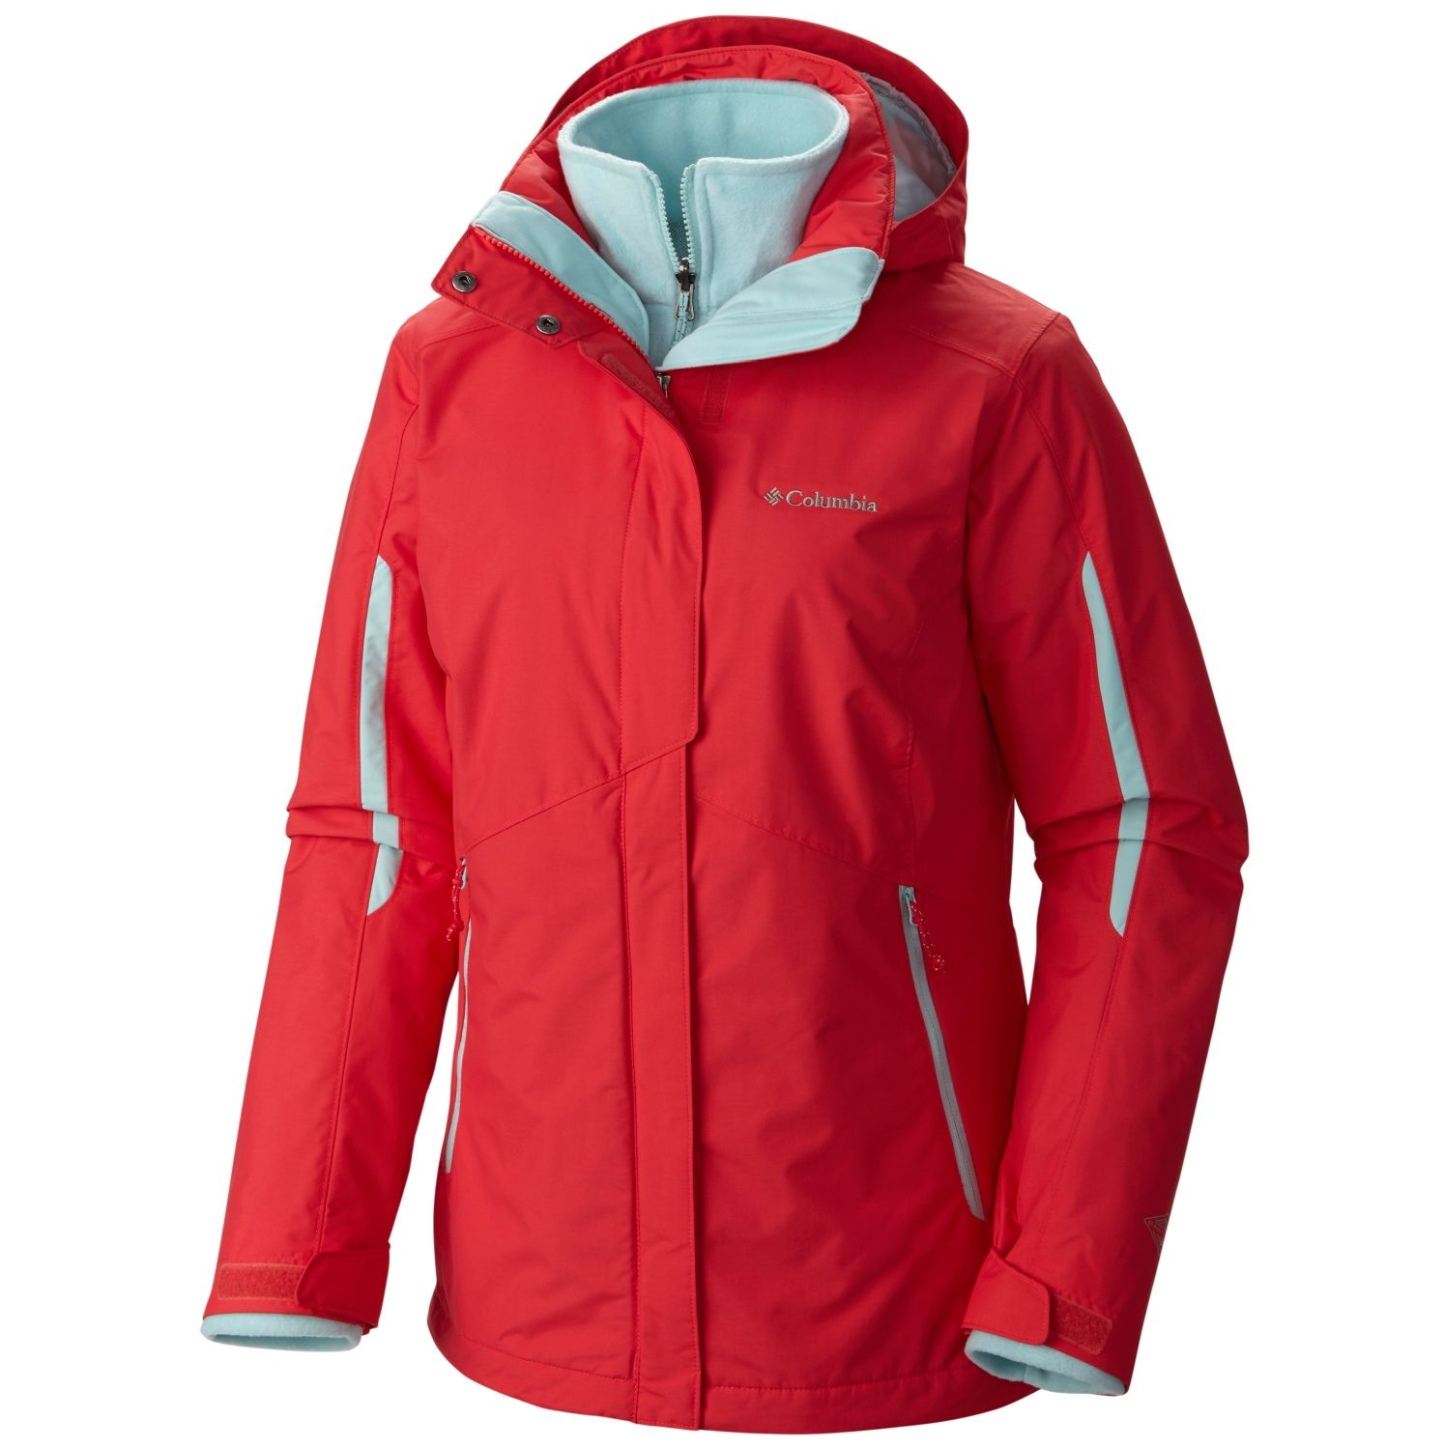 Columbia Women's Bugaboo Interchange Ski Jacket Red Camelia-30